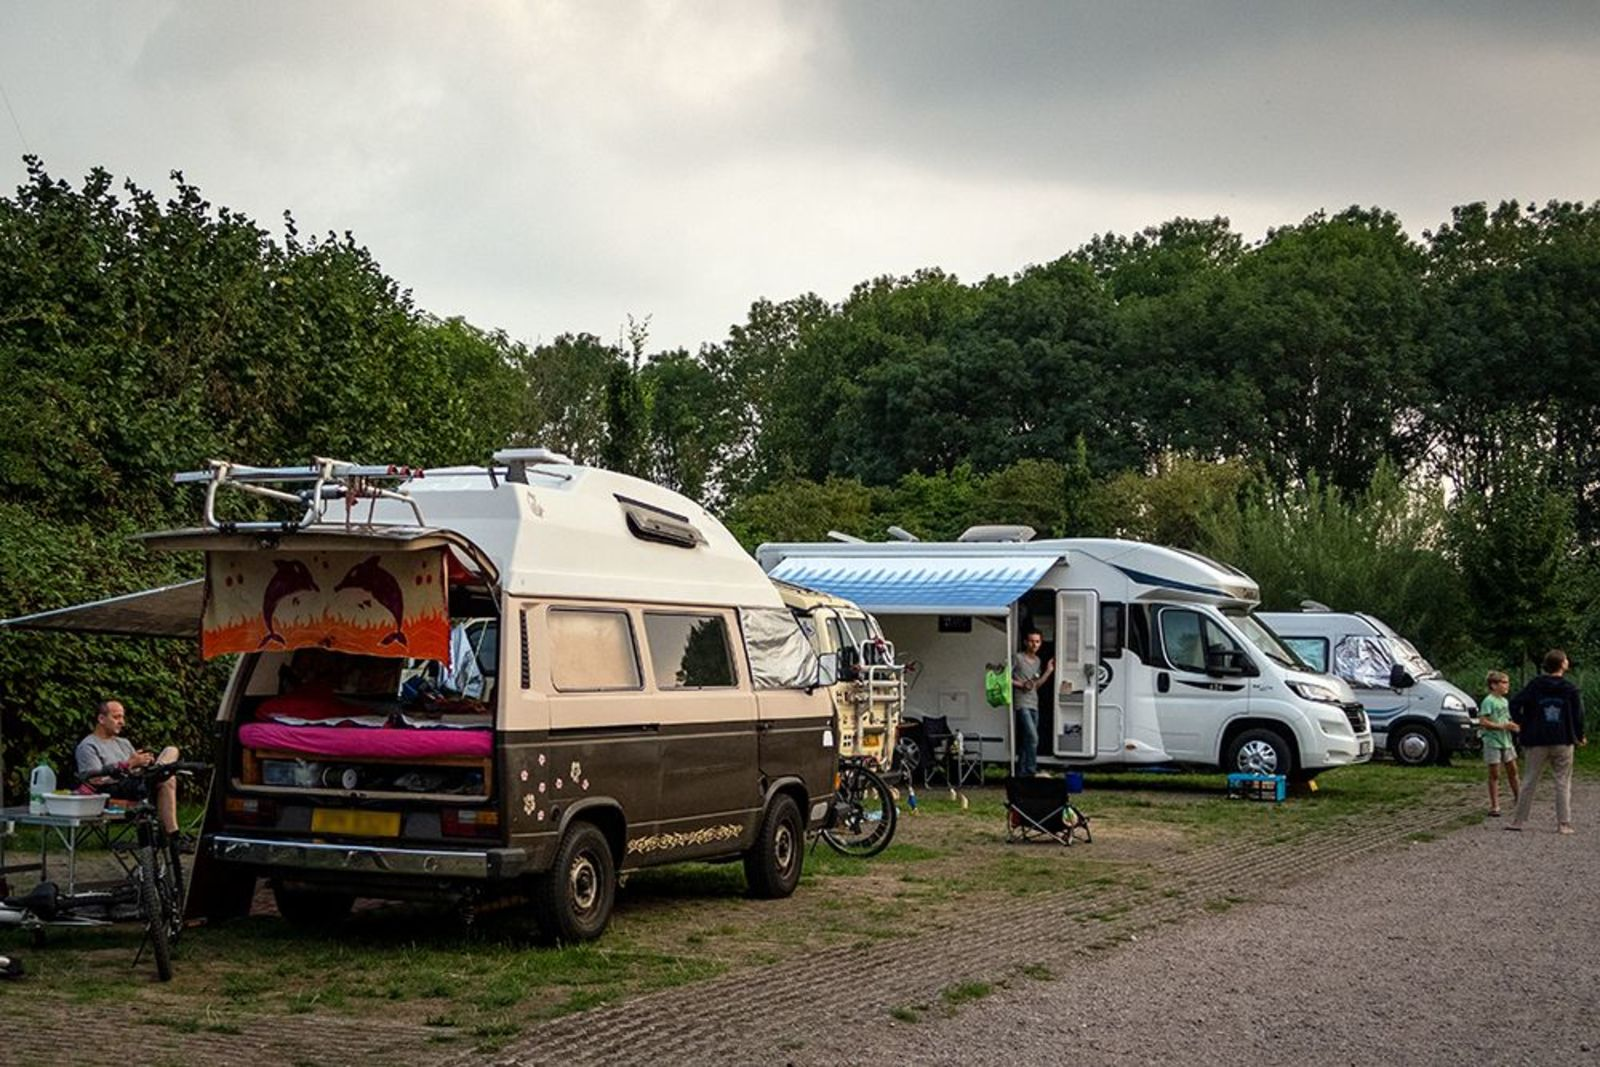 Two motorhome/caravan pitches side by side